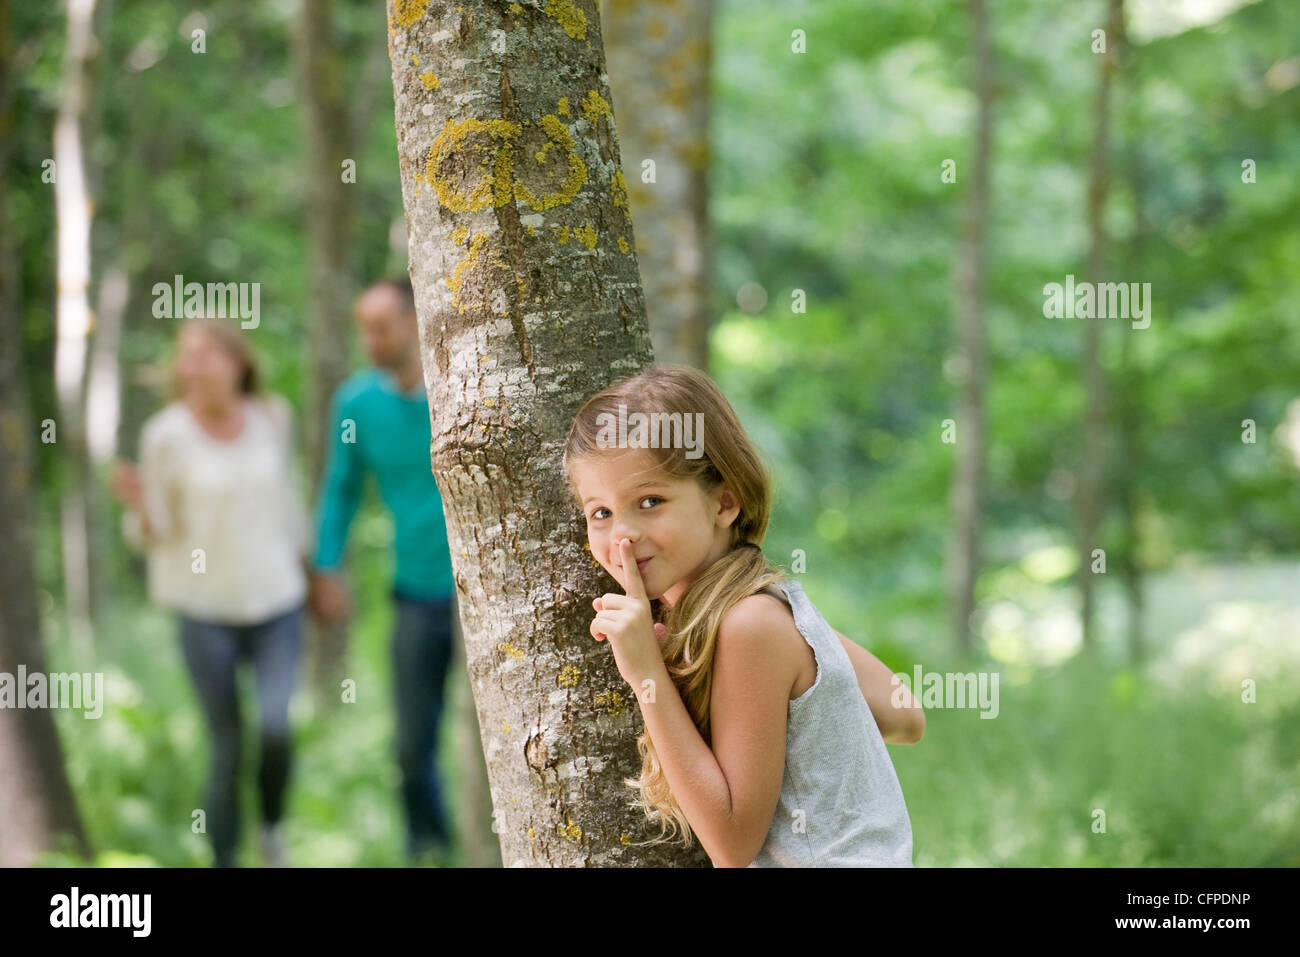 Girl hiding behind tree with finger on lips Stock Photo